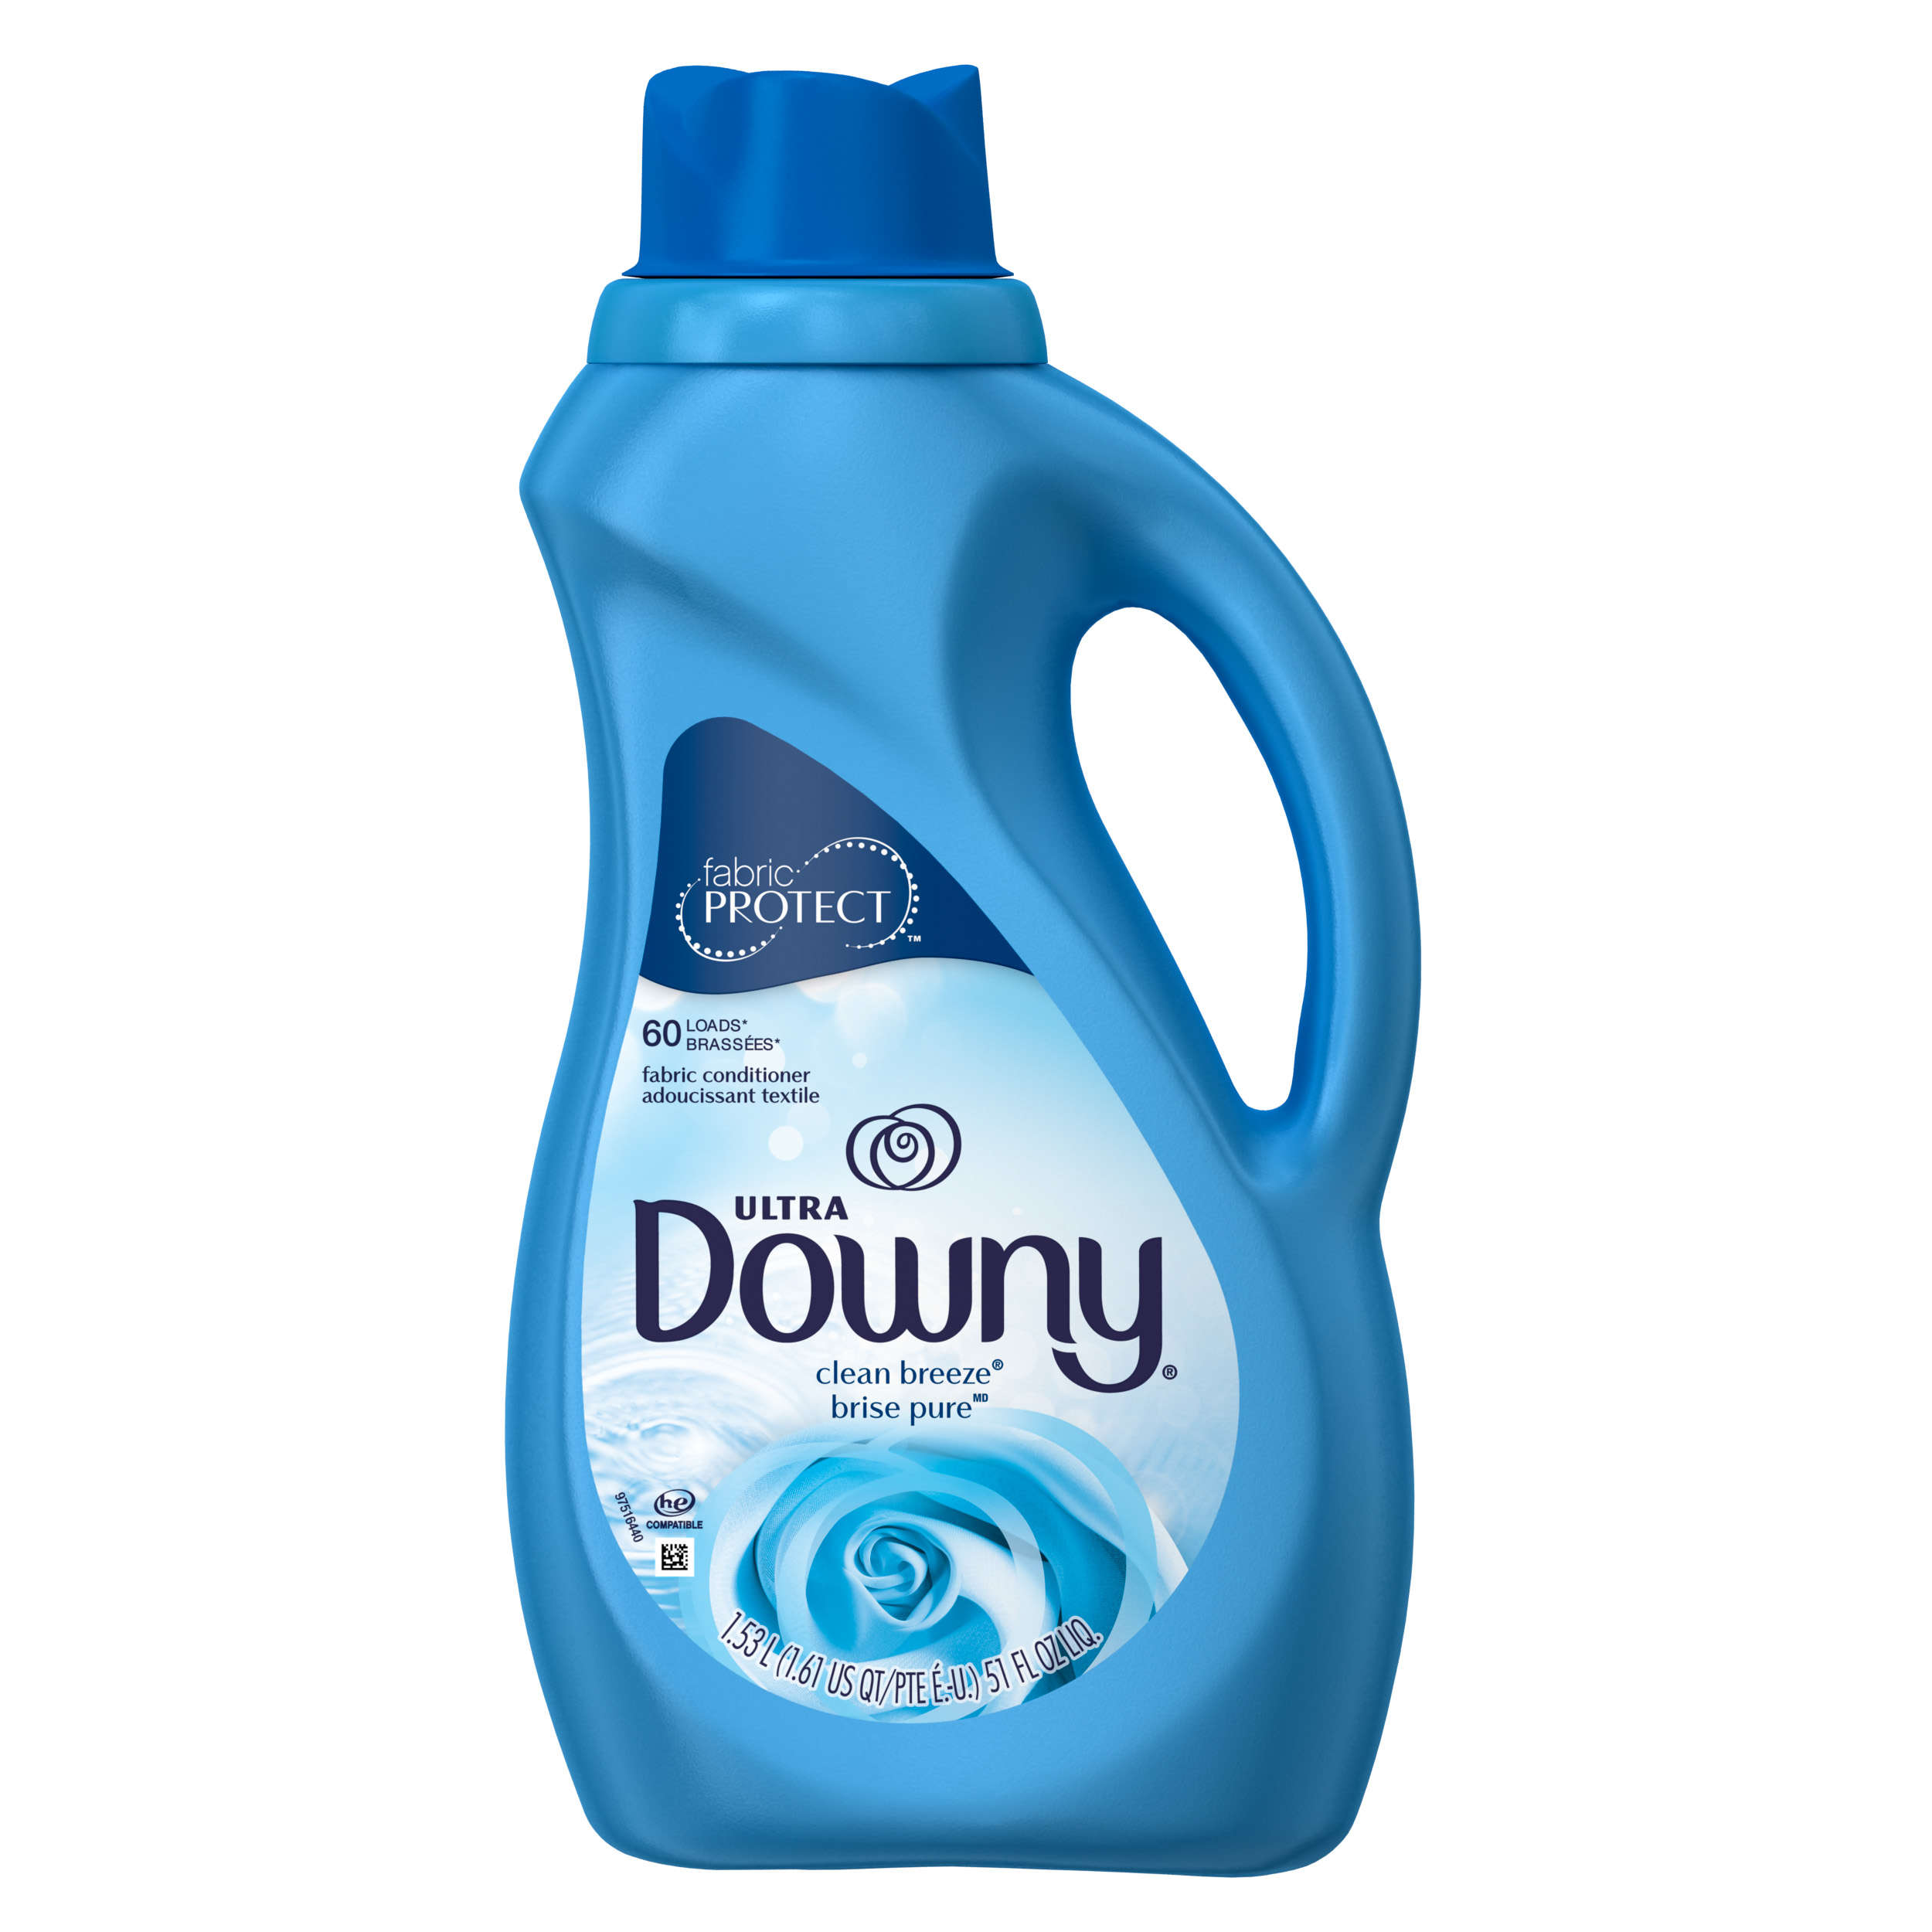 Downy Ultra Liquid Fabric Conditioner, Clean Breeze, 60 Loads 51 fl oz